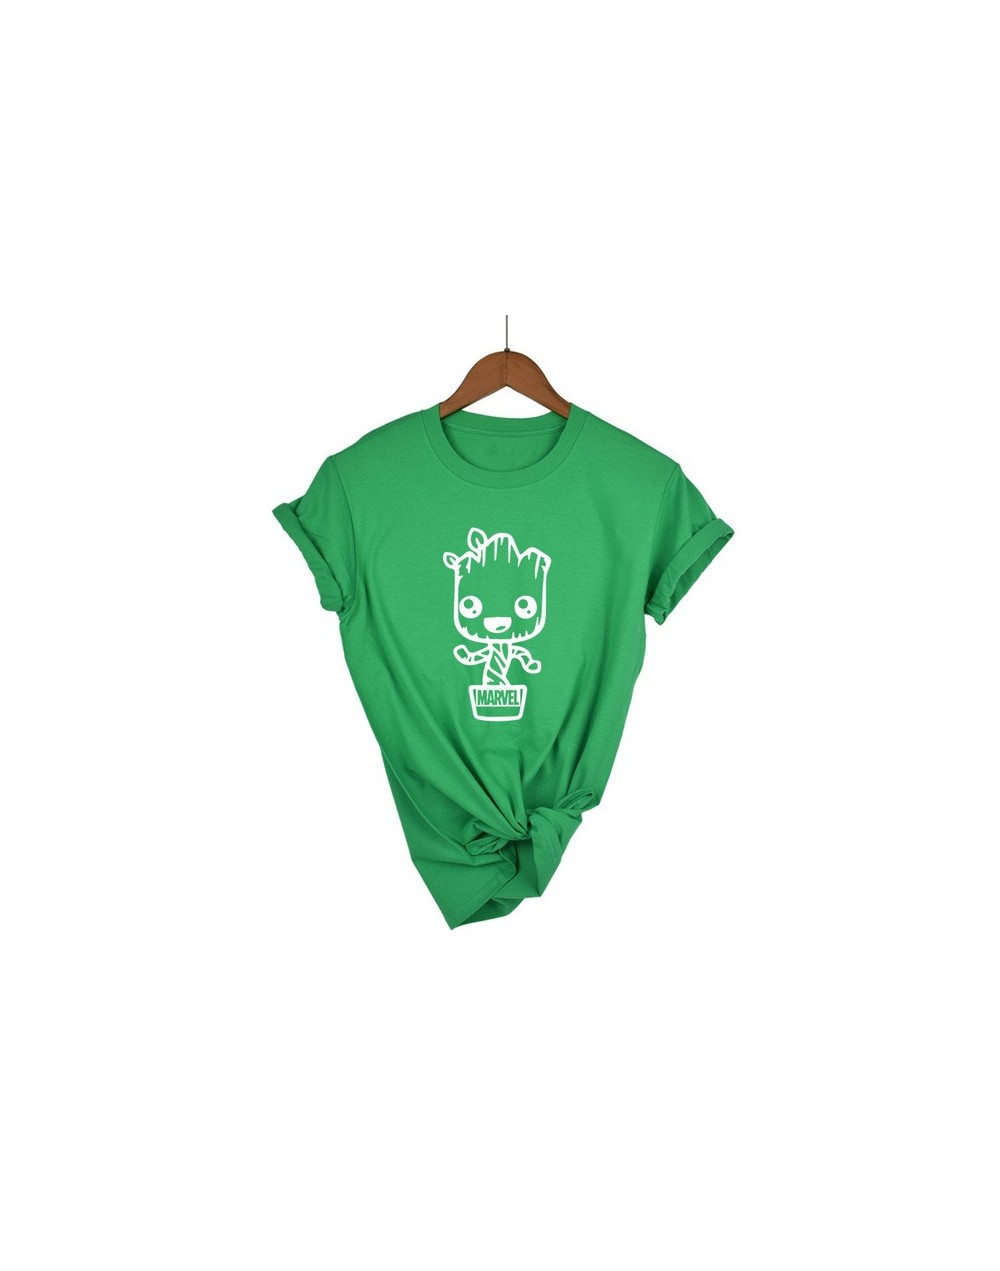 Newest 2018 Funny kawaii GROOT MARVEL 100% Cotton T-shirt Women's Fashion Short Sleeve Tee Shirts Hipster O-neck Popular T S...